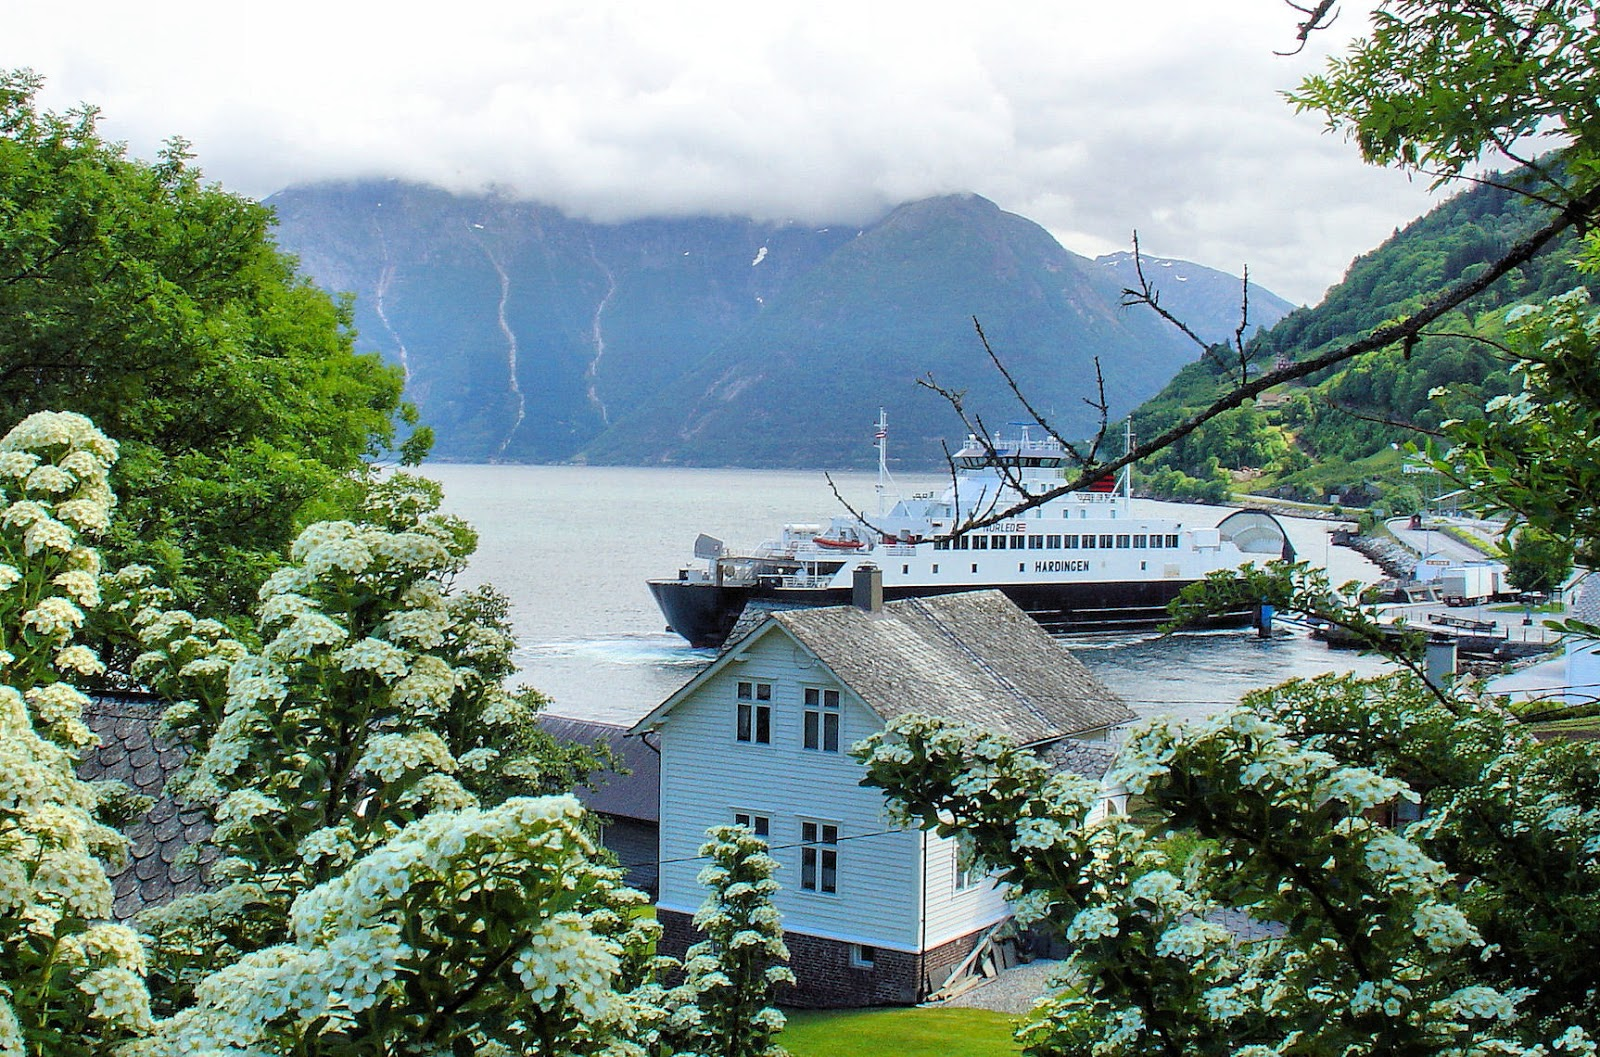 Another view of the Hardangerfjord ferry departing for distant shores.